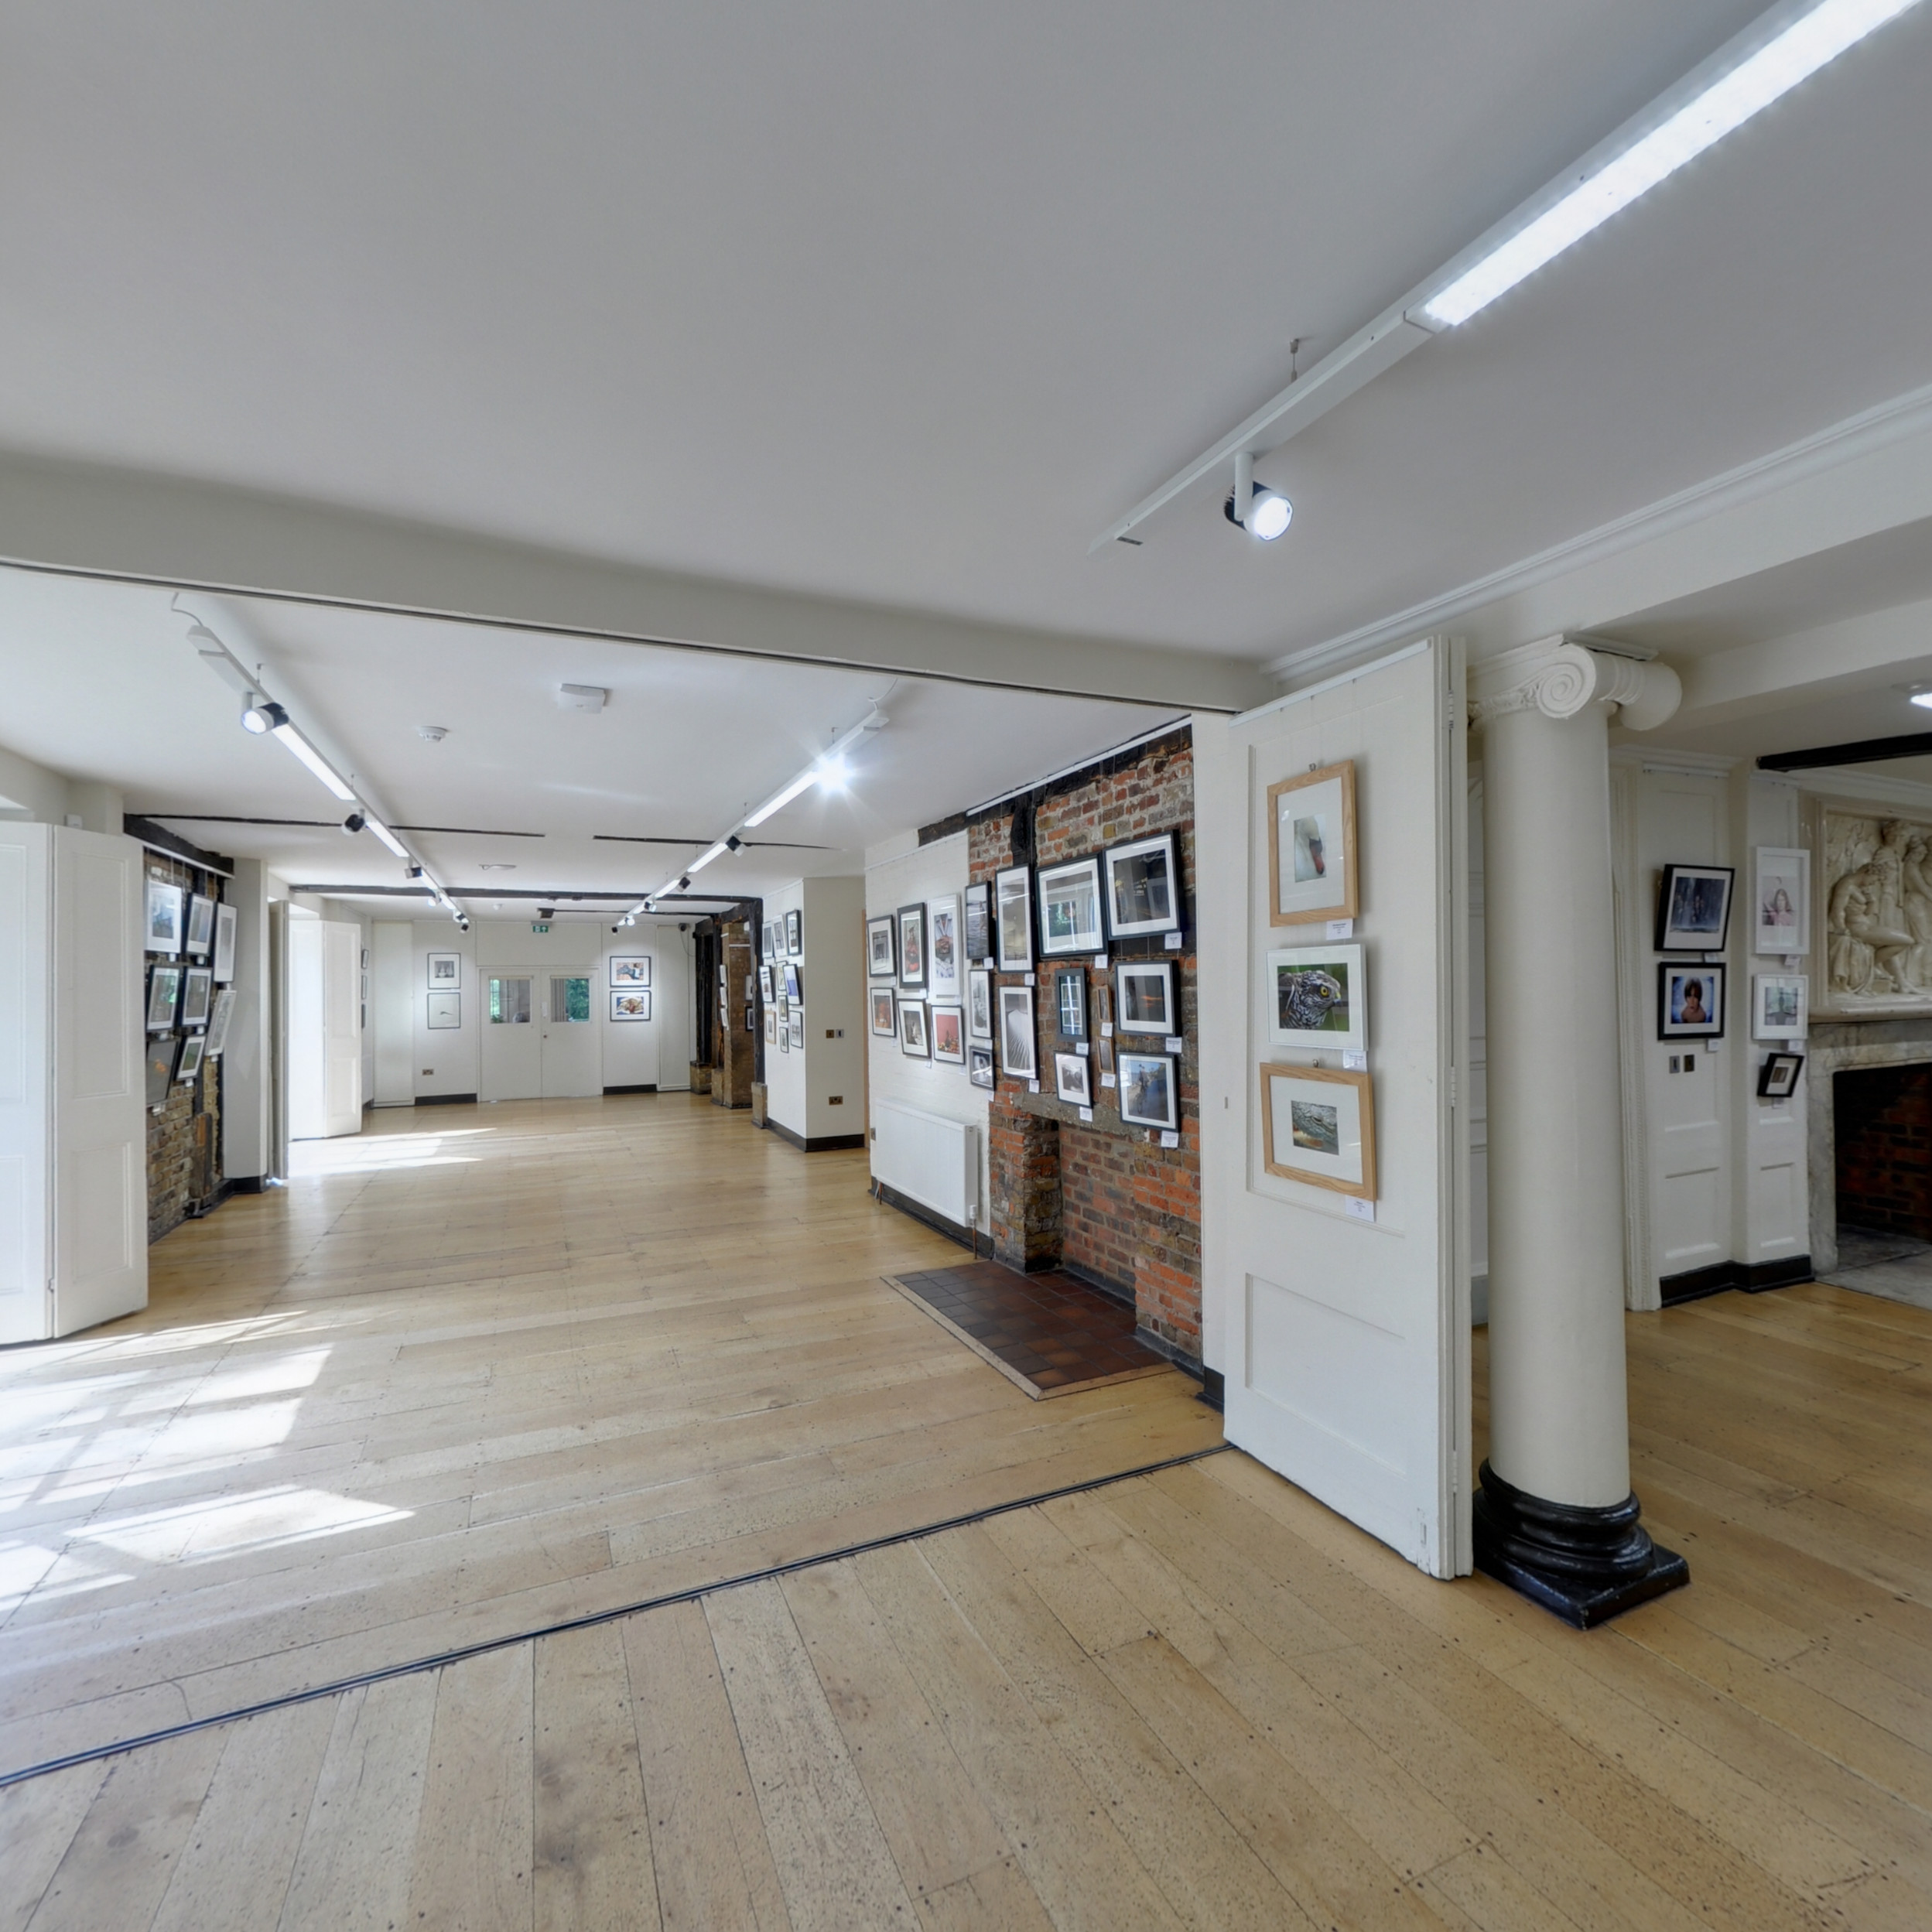 Lower Gallery and Entrance Hall